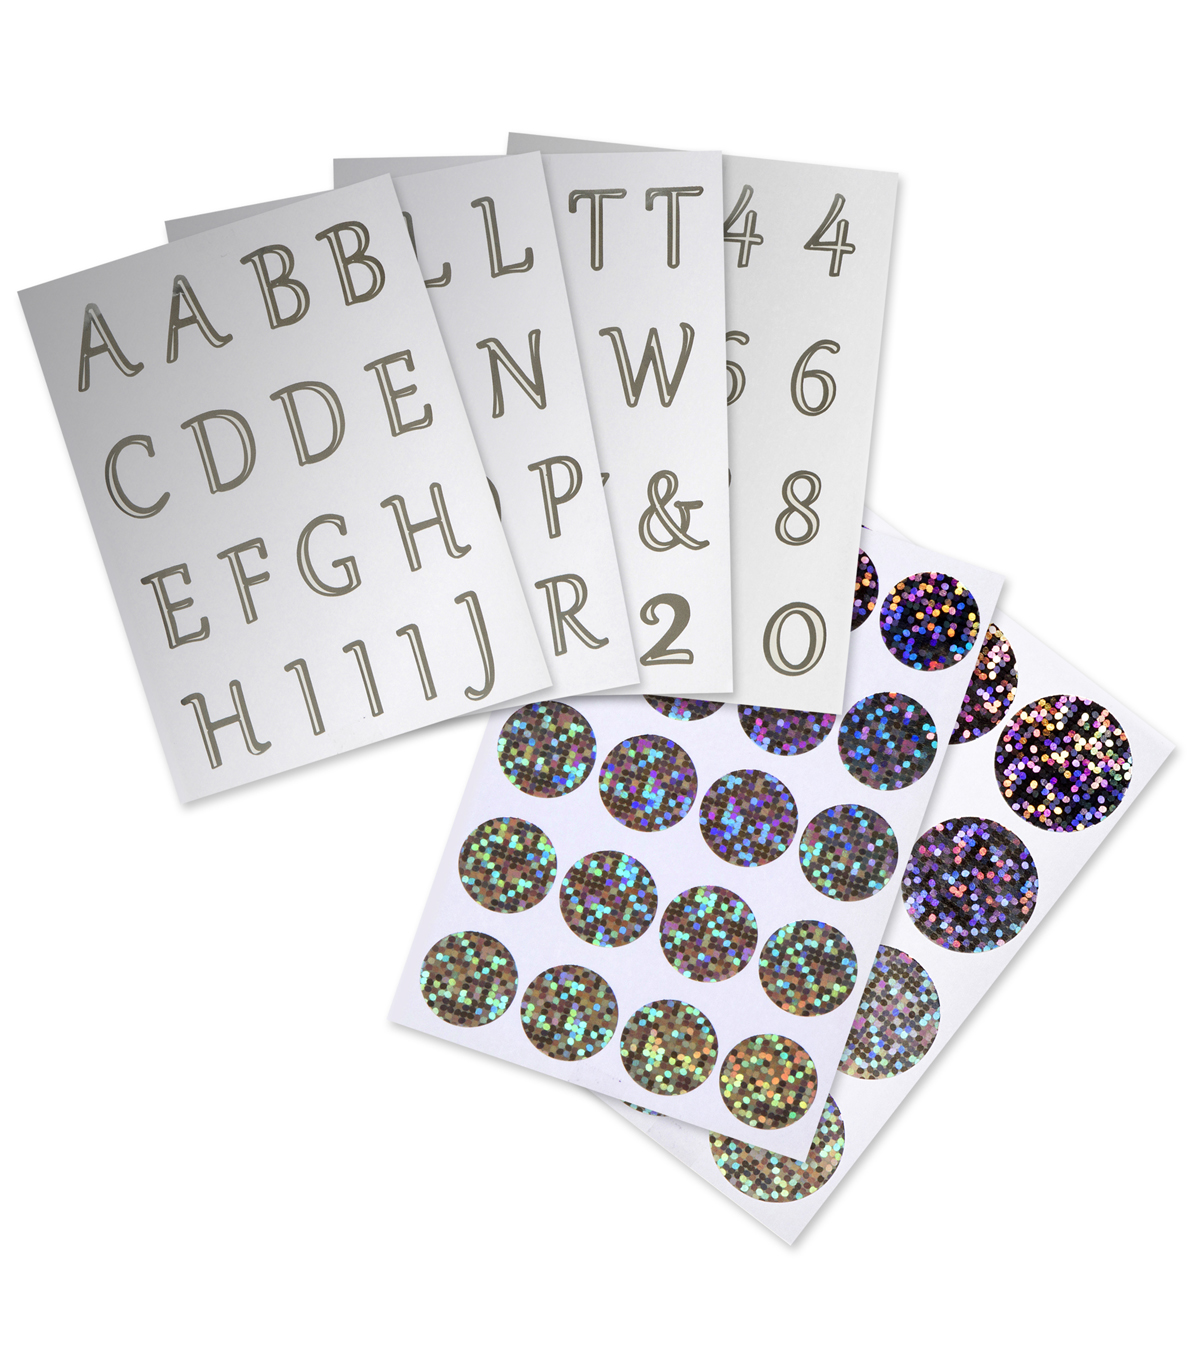 David Tutera Letter, Number&Round Embellishment Stickers